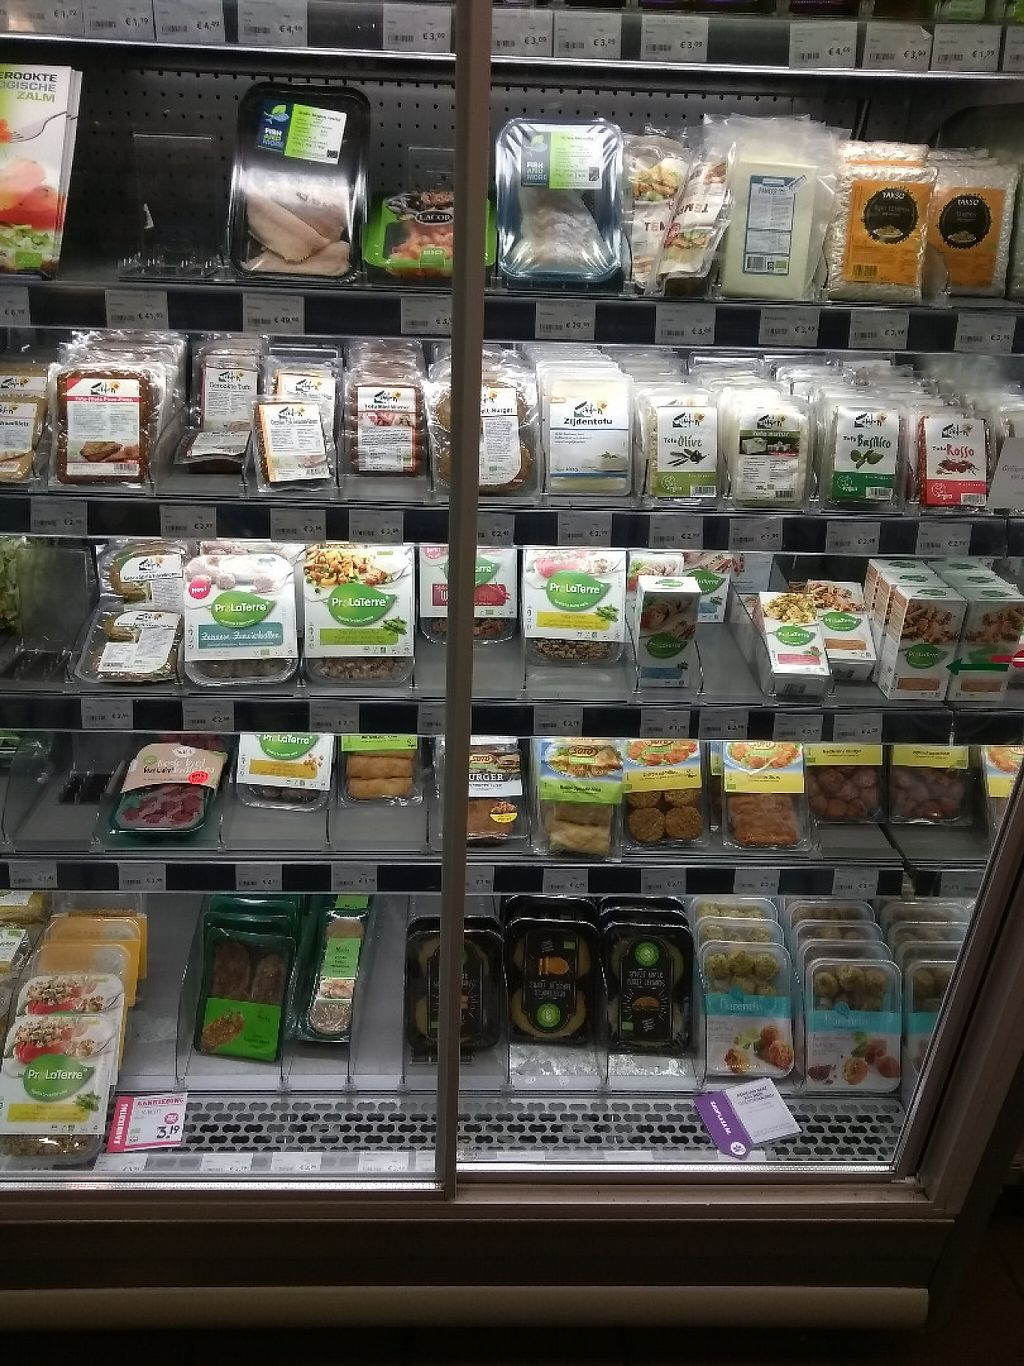 """Photo of EkoPlaza  by <a href=""""/members/profile/thenaturalfusions"""">thenaturalfusions</a> <br/>tofu and seitan fridge  <br/> May 18, 2017  - <a href='/contact/abuse/image/11718/259784'>Report</a>"""